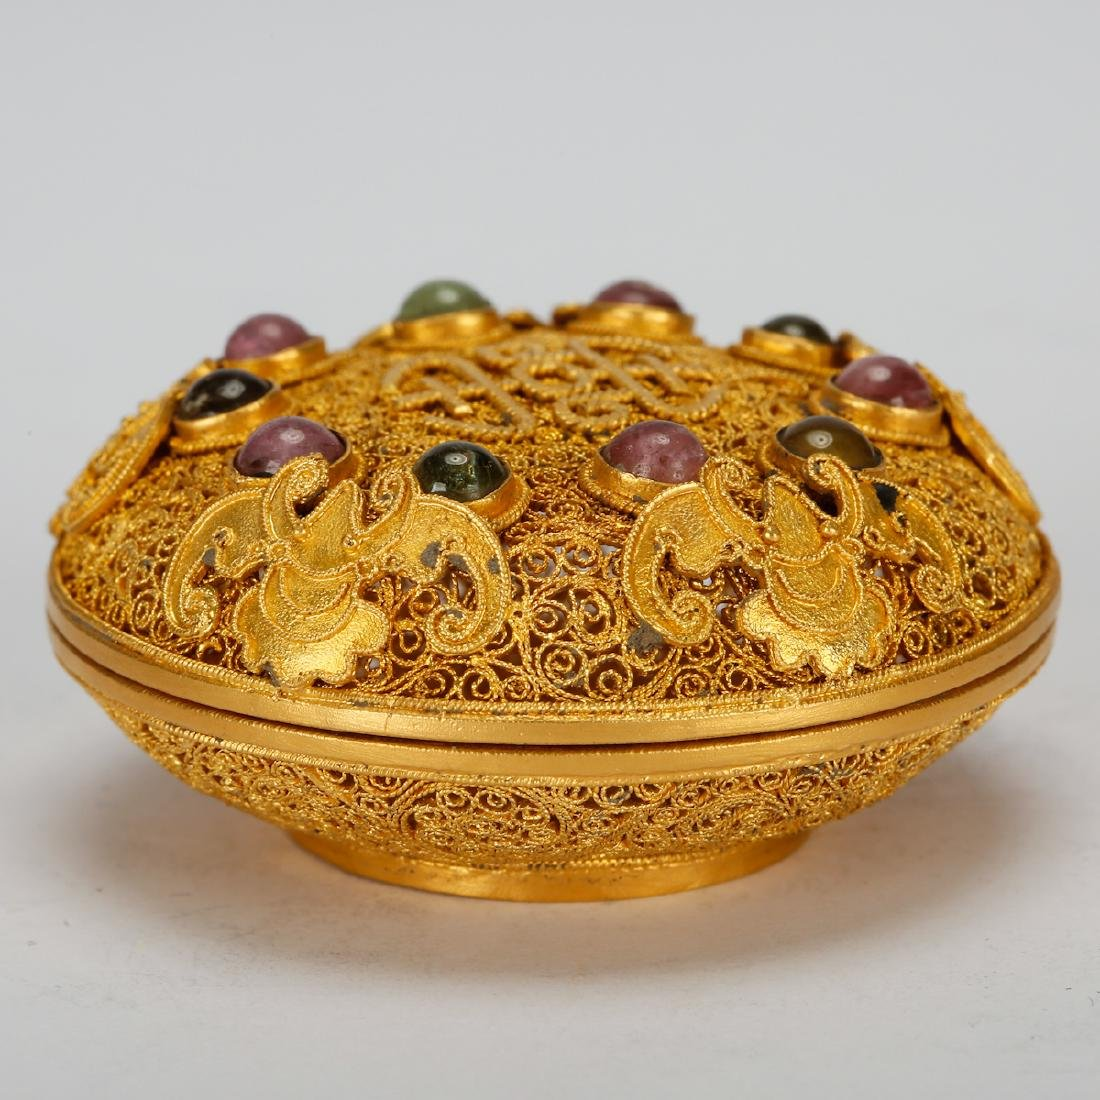 CHINESE GOLD WIRING JEWELRY BOX - 2